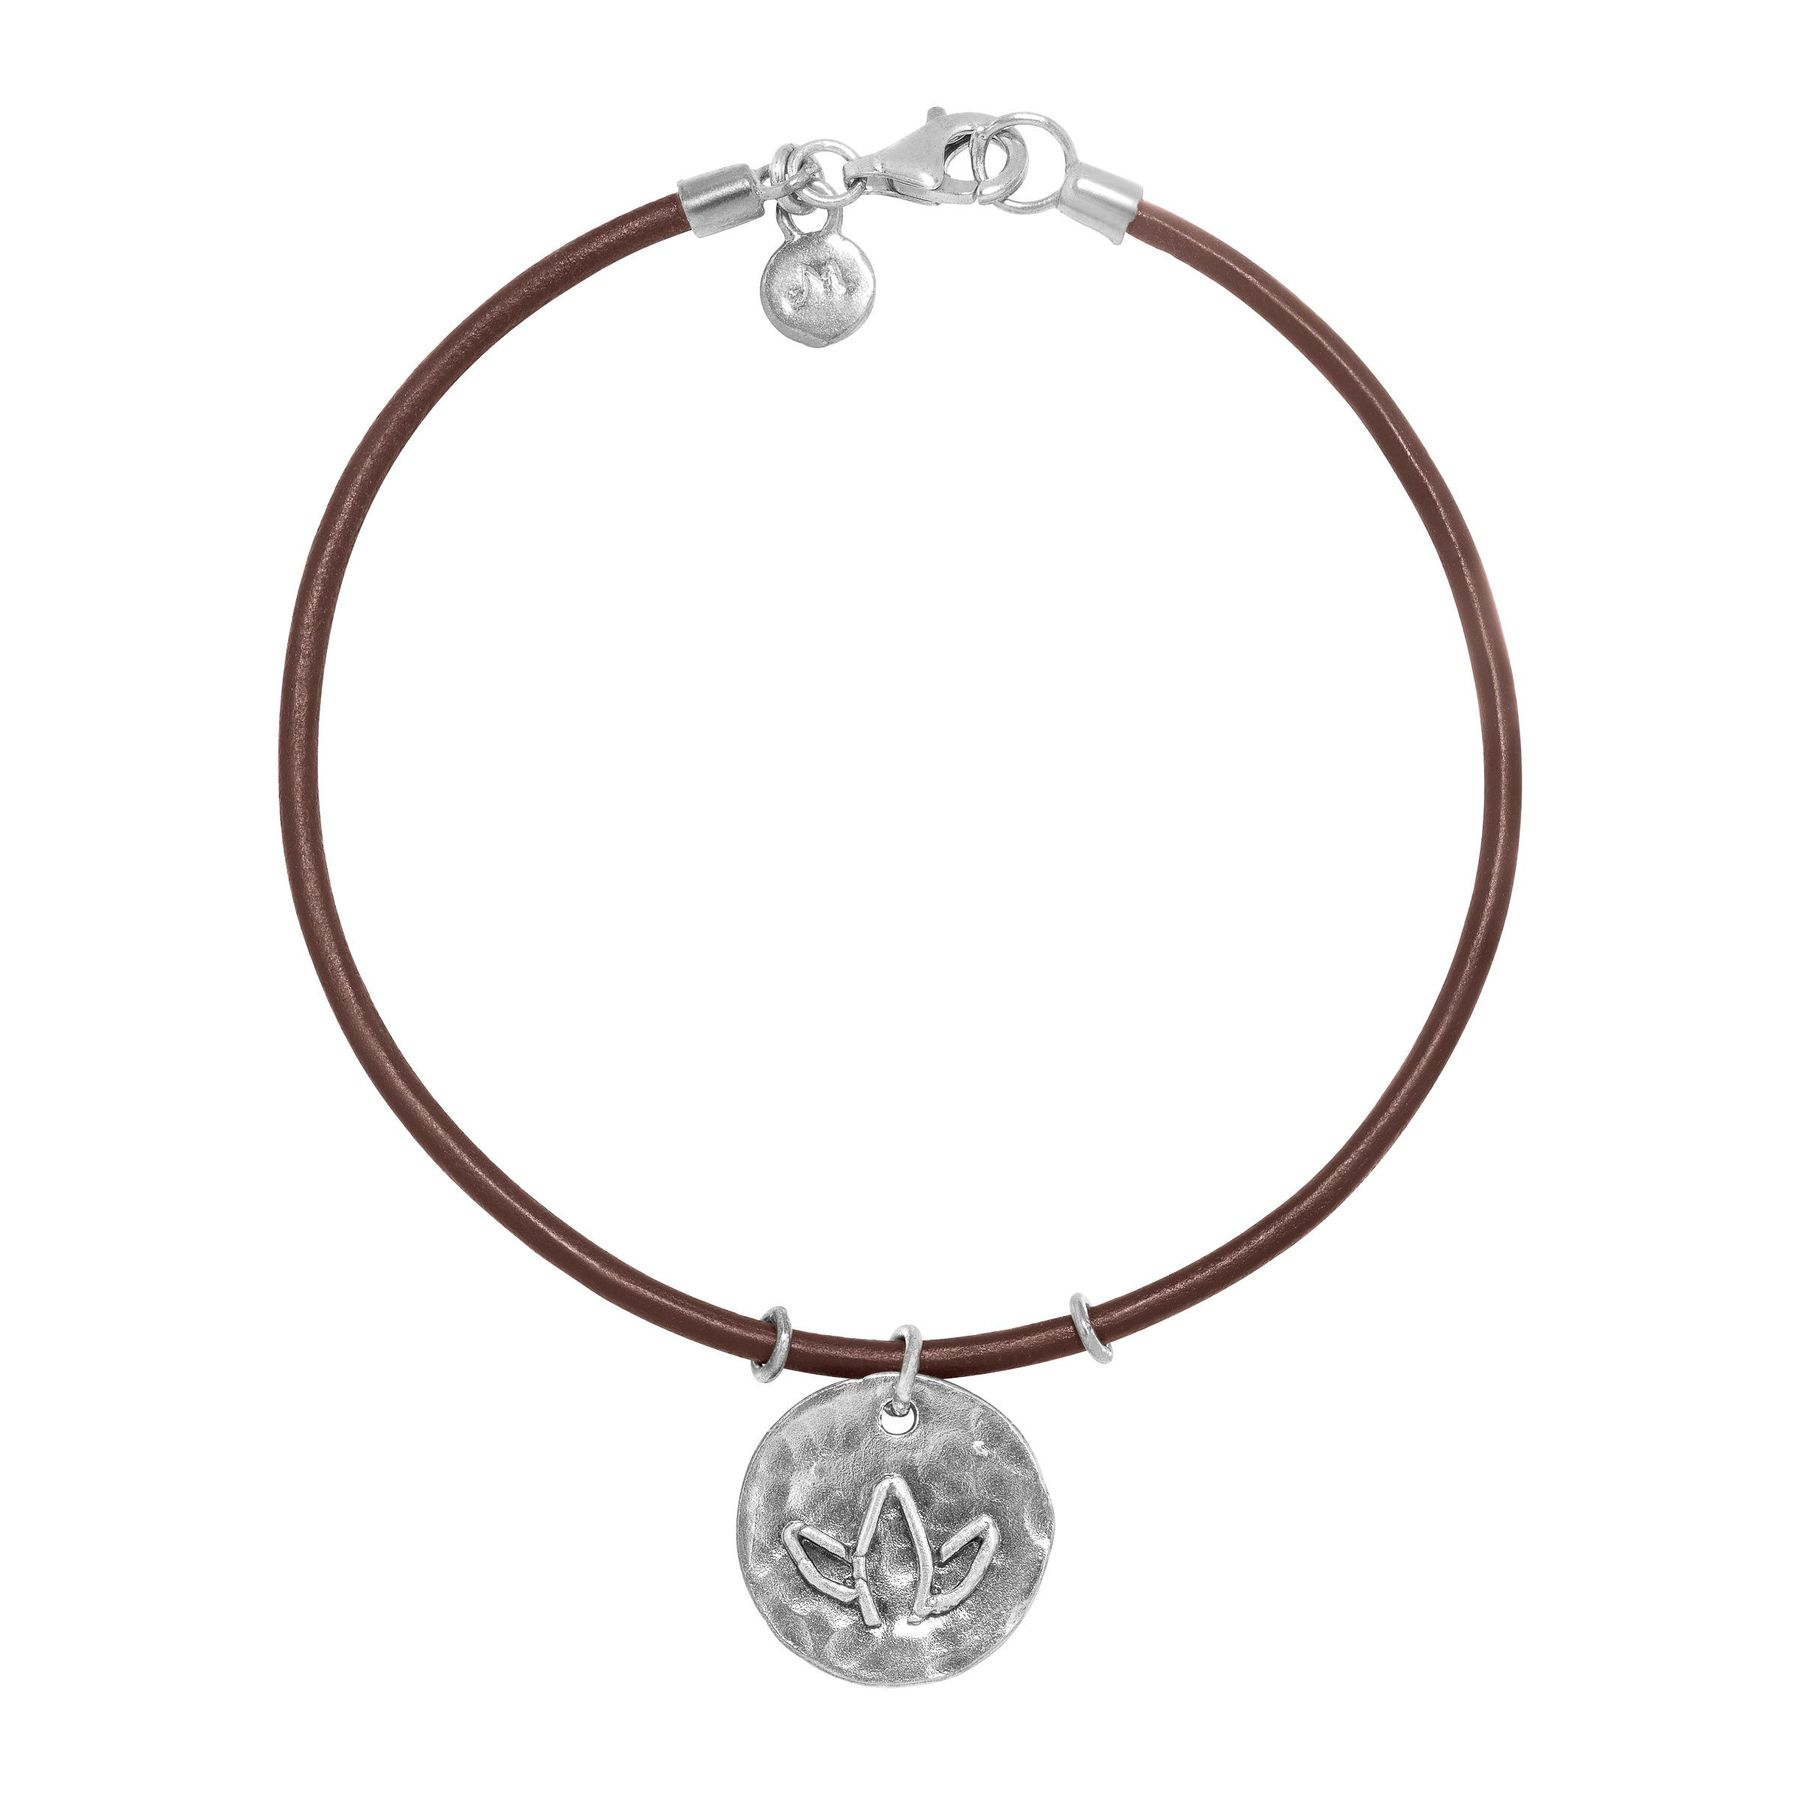 Hammered Lotus Flower Charm Bracelet In Sterling Silver And Leather